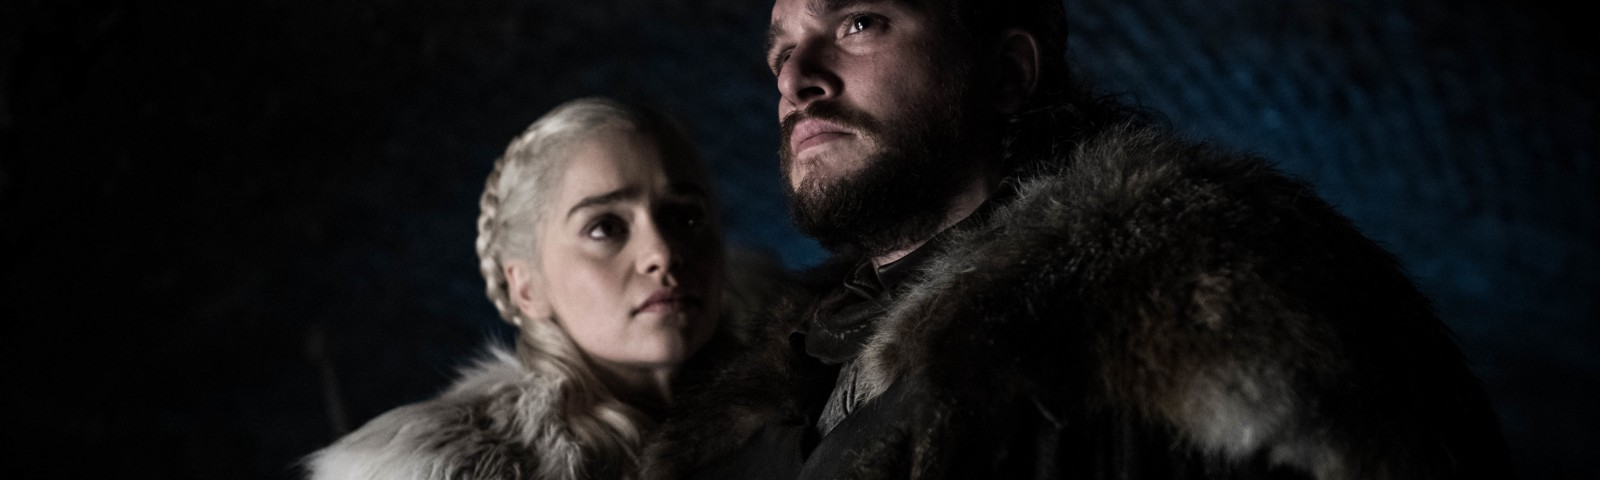 All stories published by HBO & Cinemax PR on July 16, 2019 – Medium